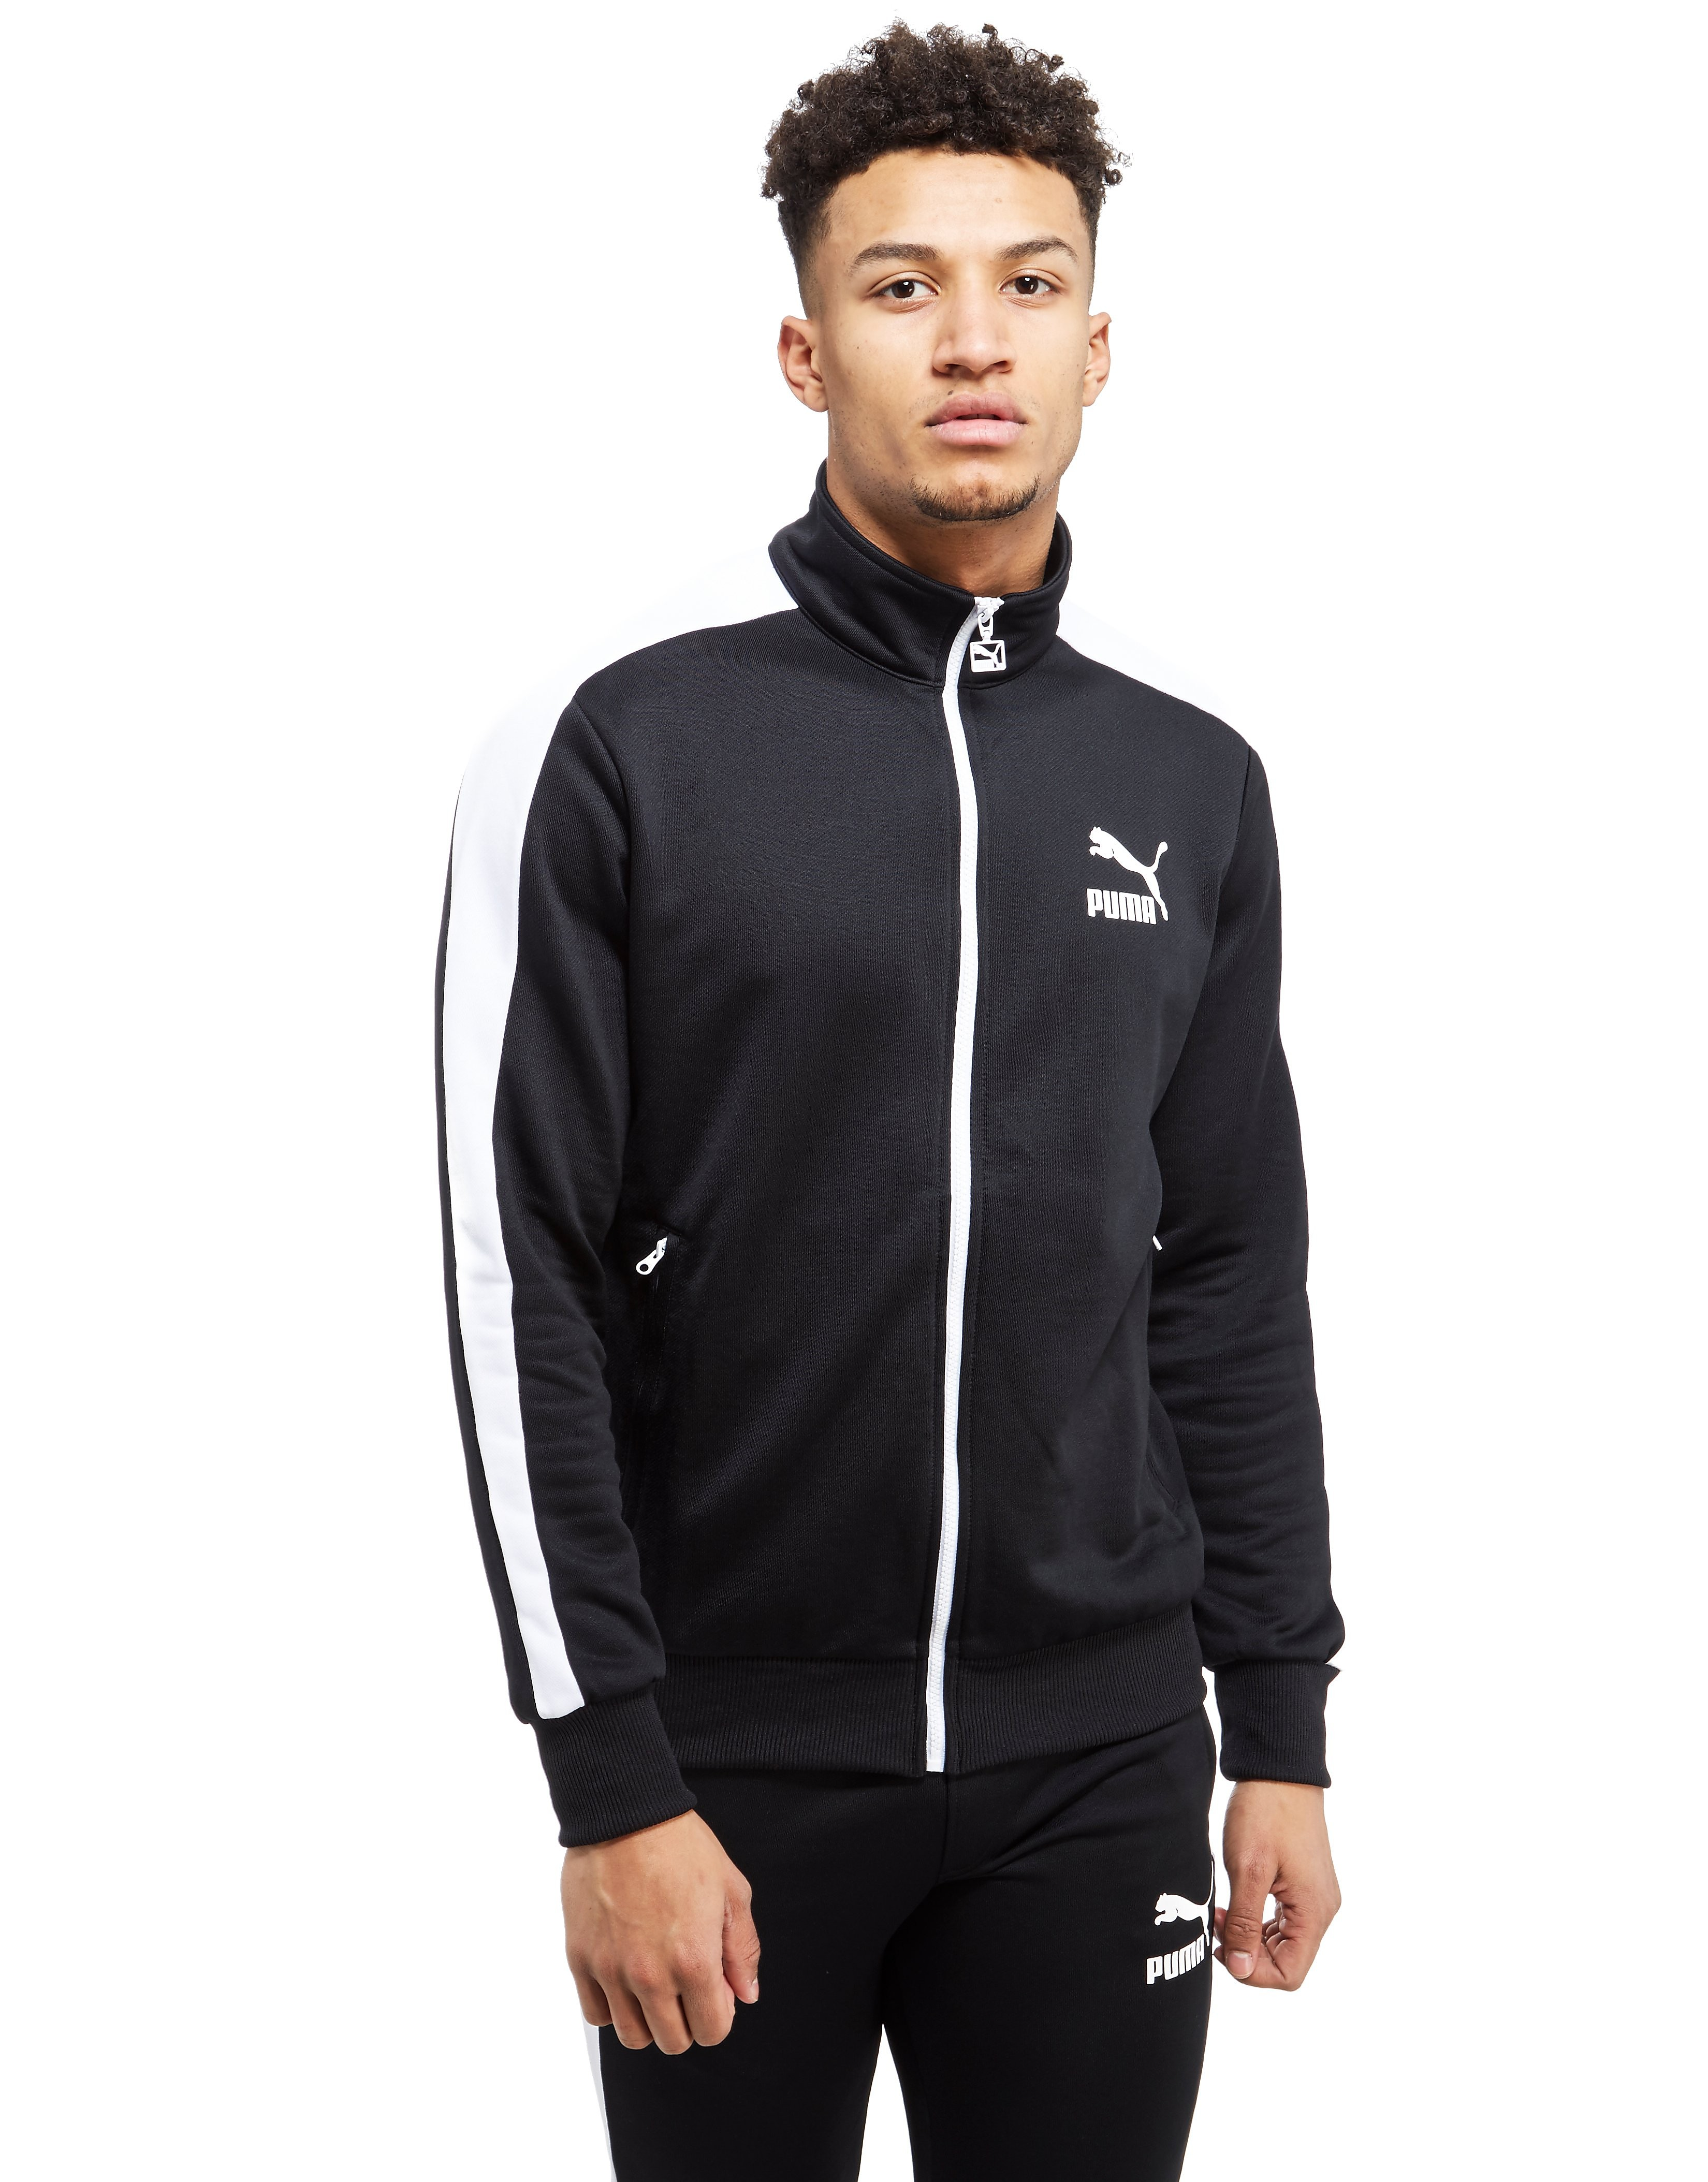 PUMA Archive T7 Track Top